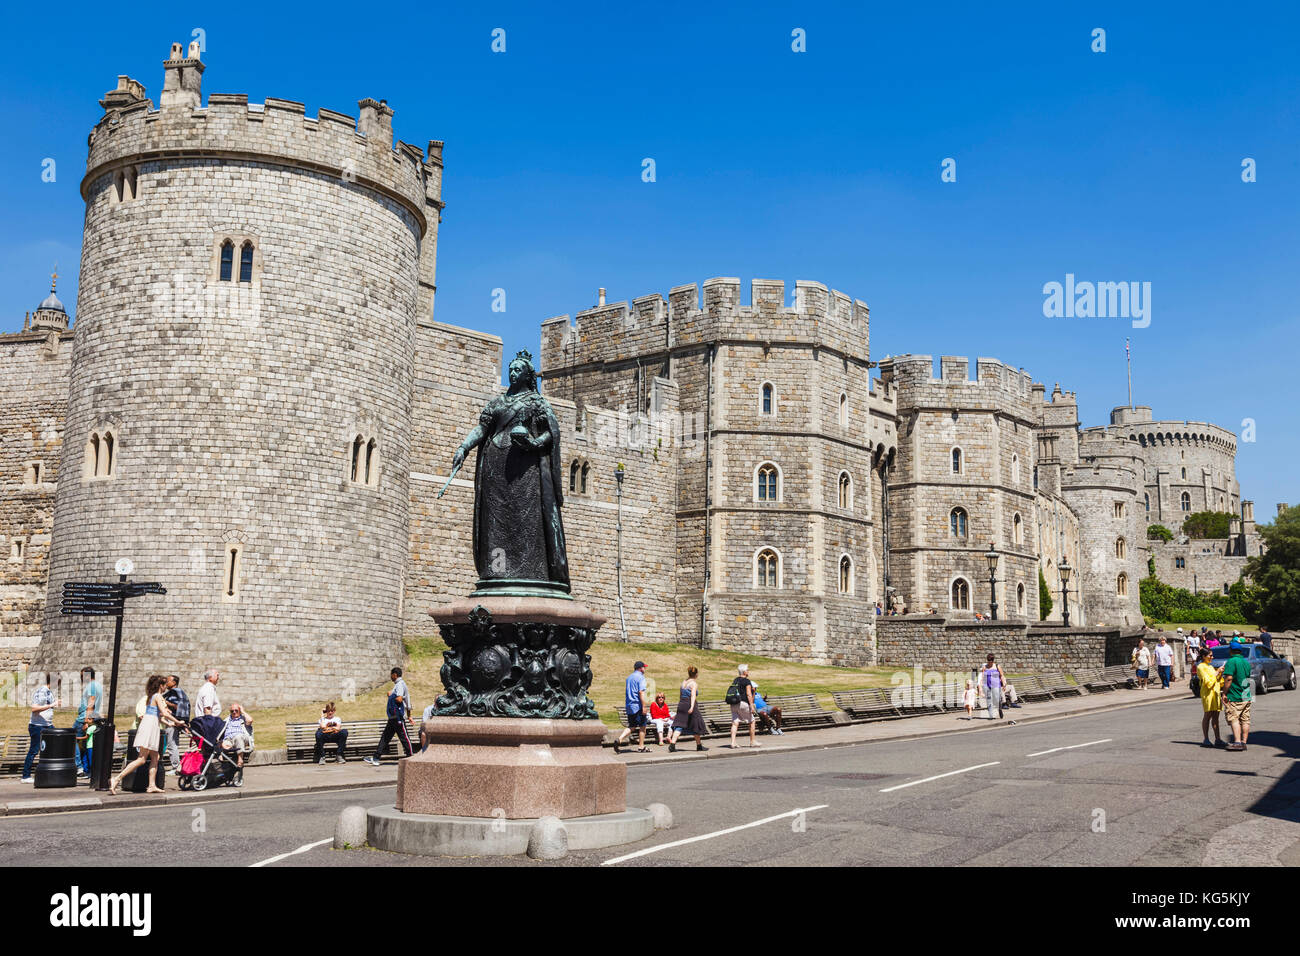 England, Berkshire, Windsor, Windsor Castle - Stock Image